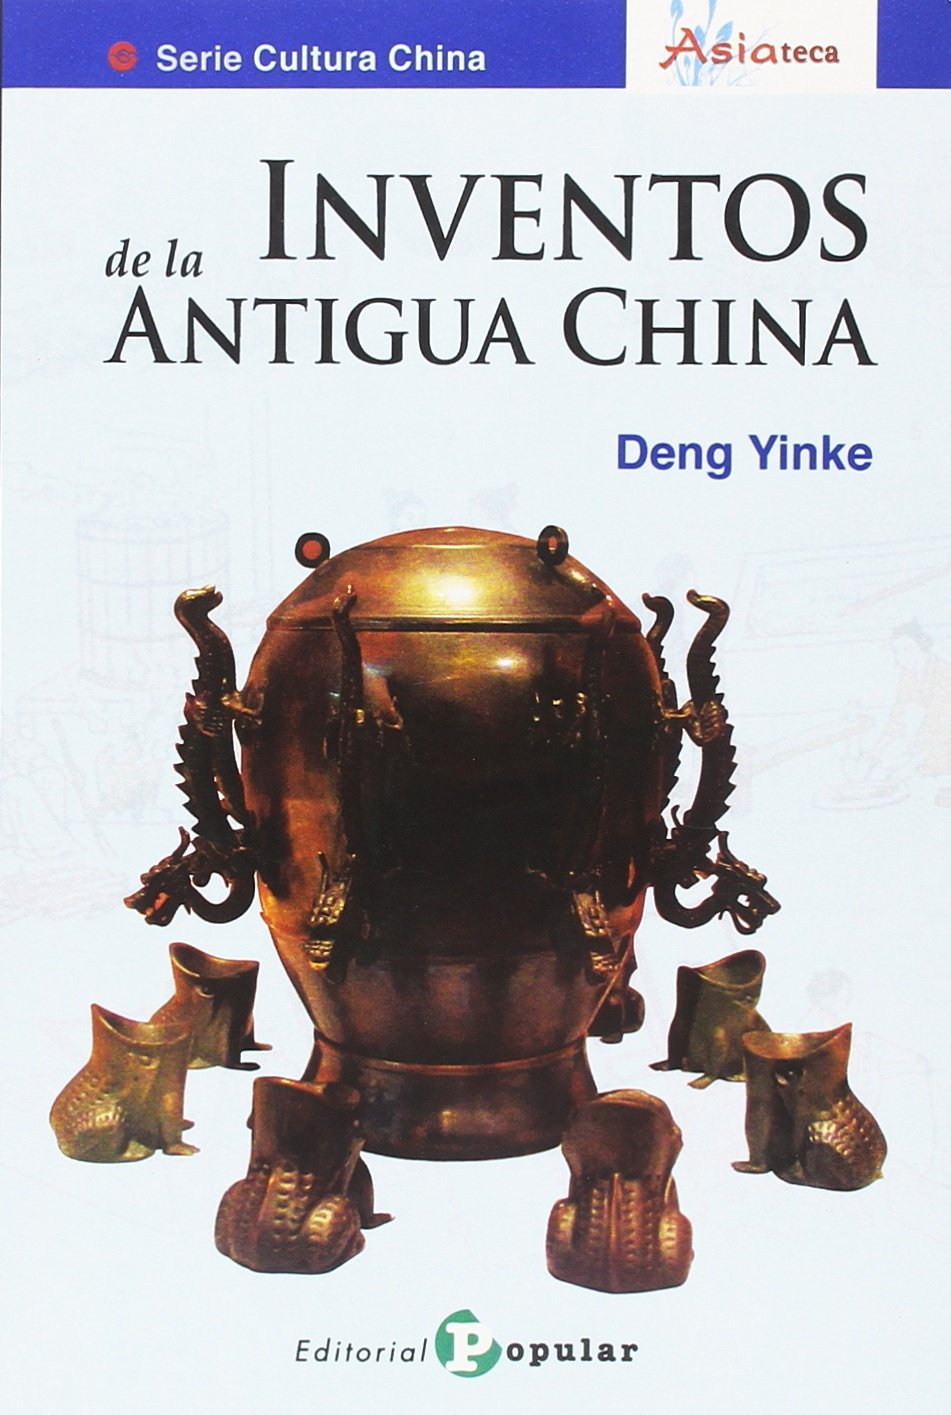 Inventos de la Antigua China (Asiateca): Amazon.es: Yinke, Deng, Yu  (Chino), Sun: Libros